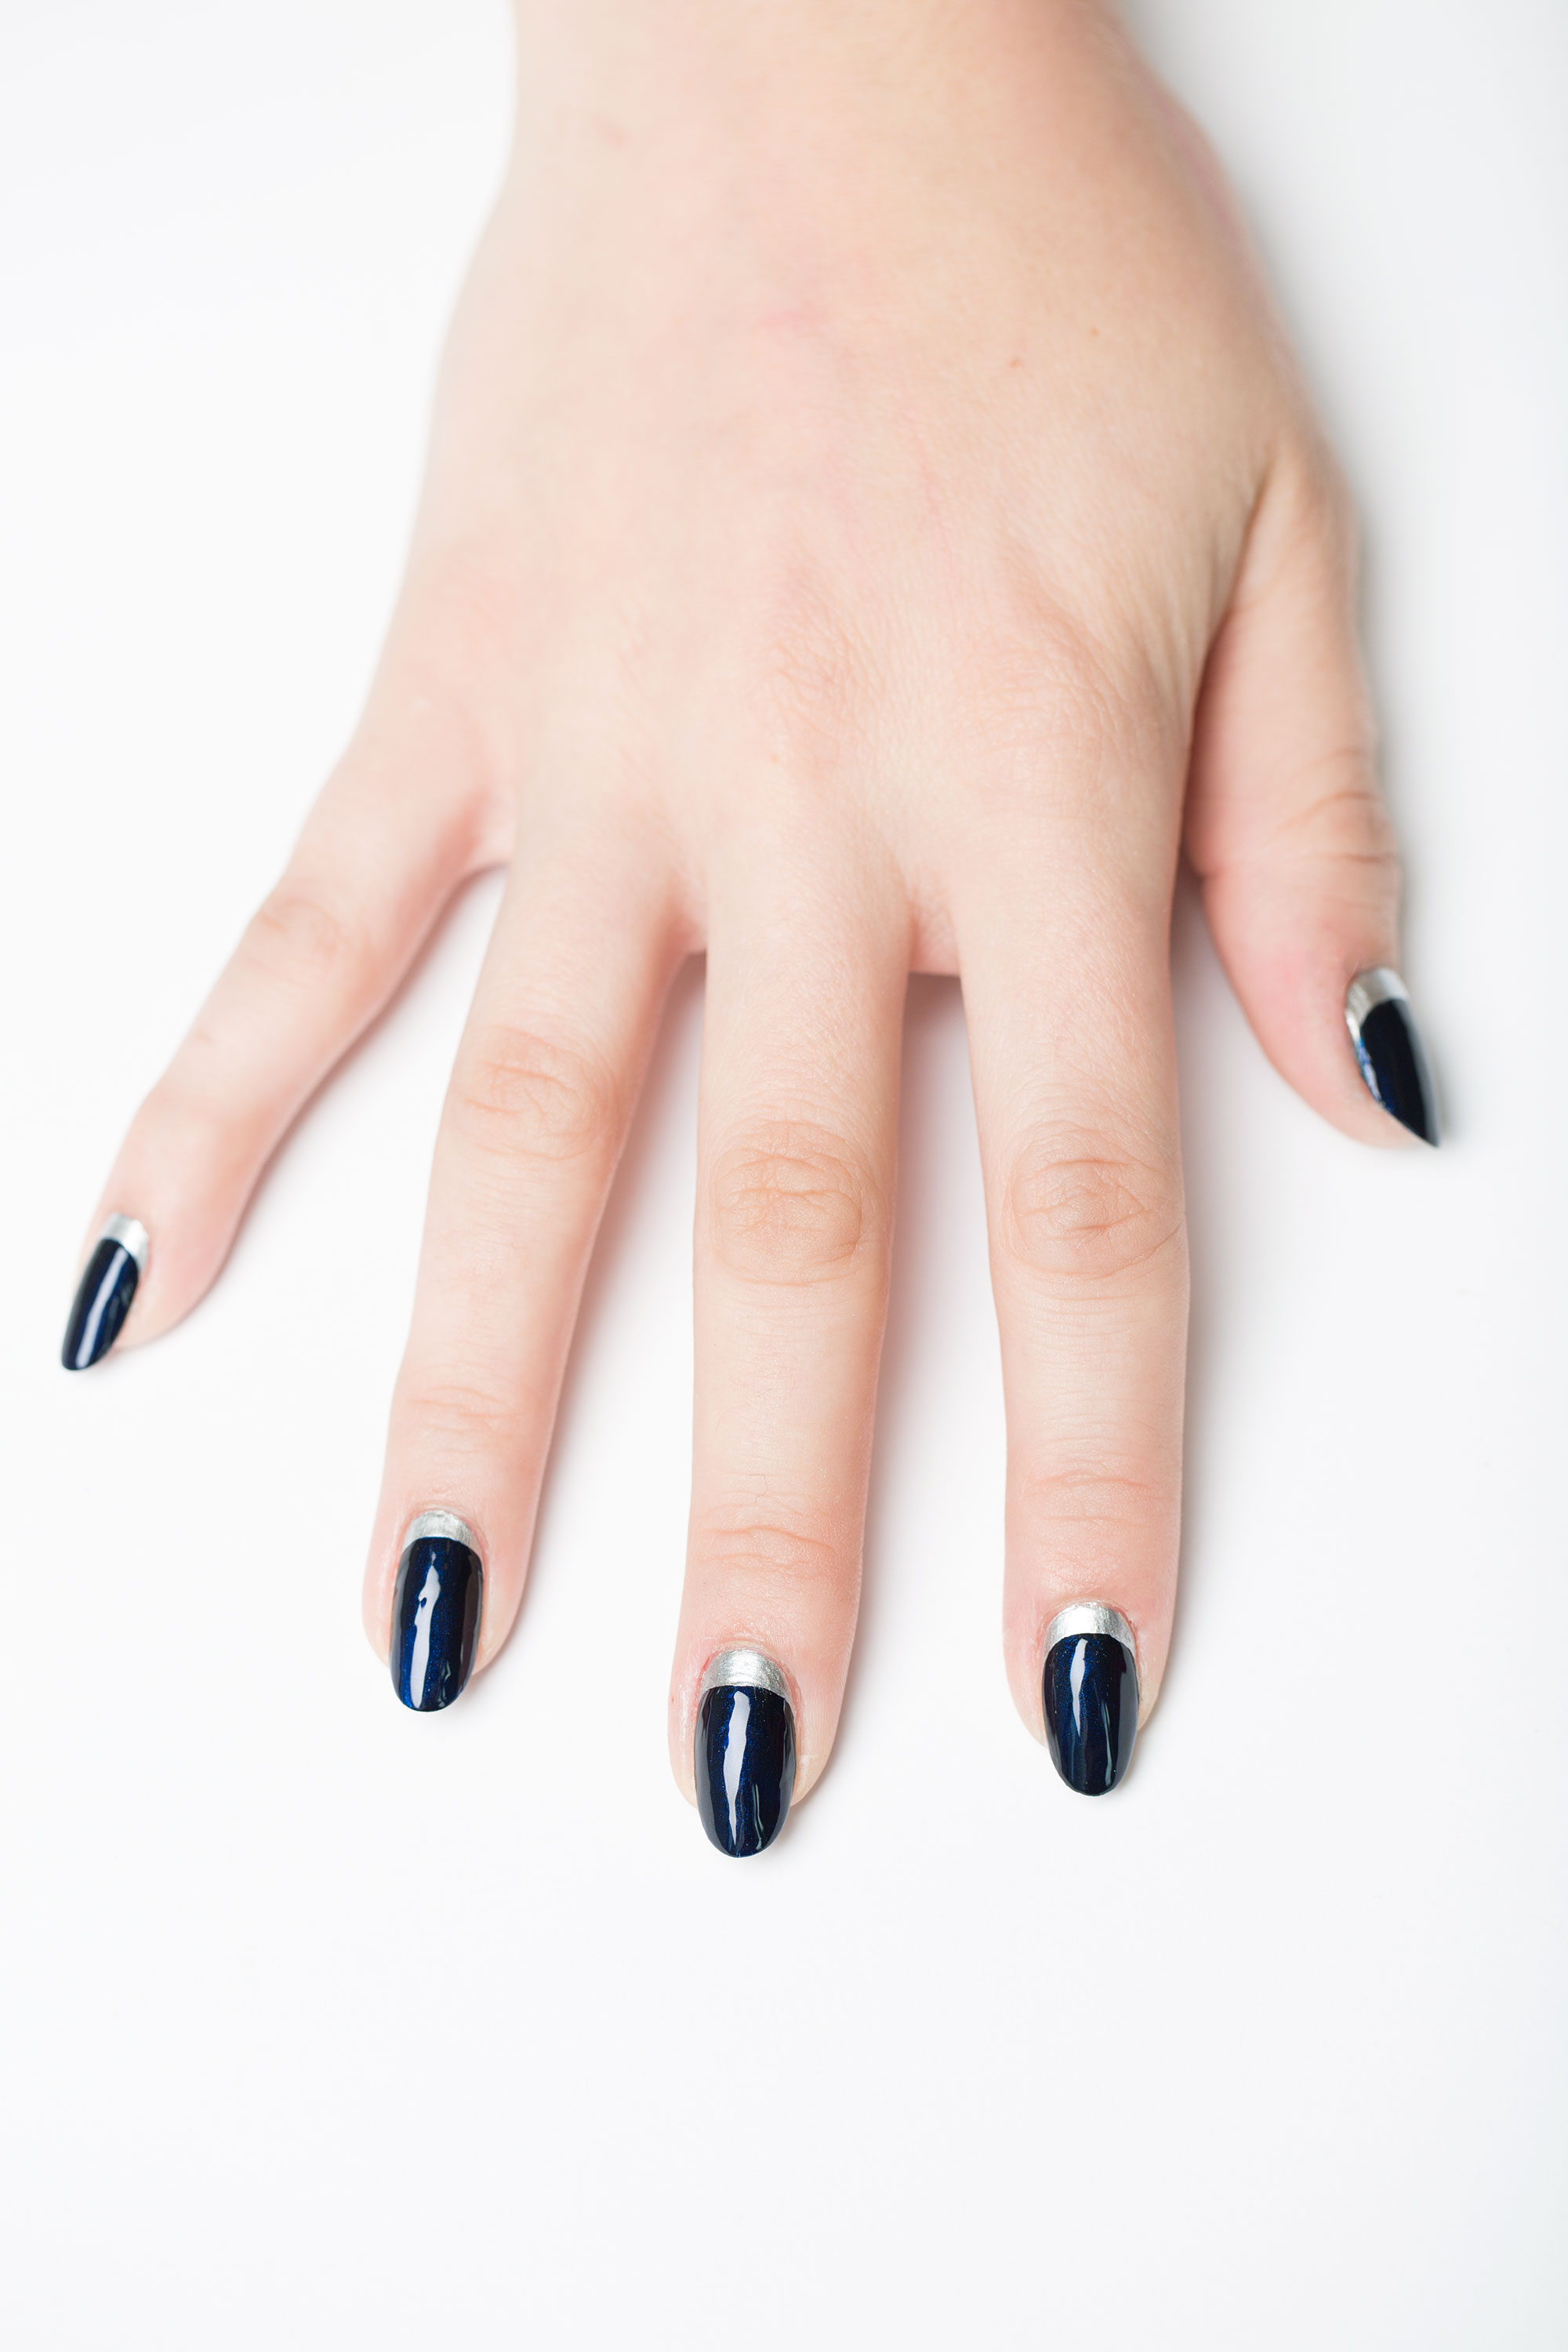 12 easy nail designs simple nail art ideas you can do yourself prinsesfo Images